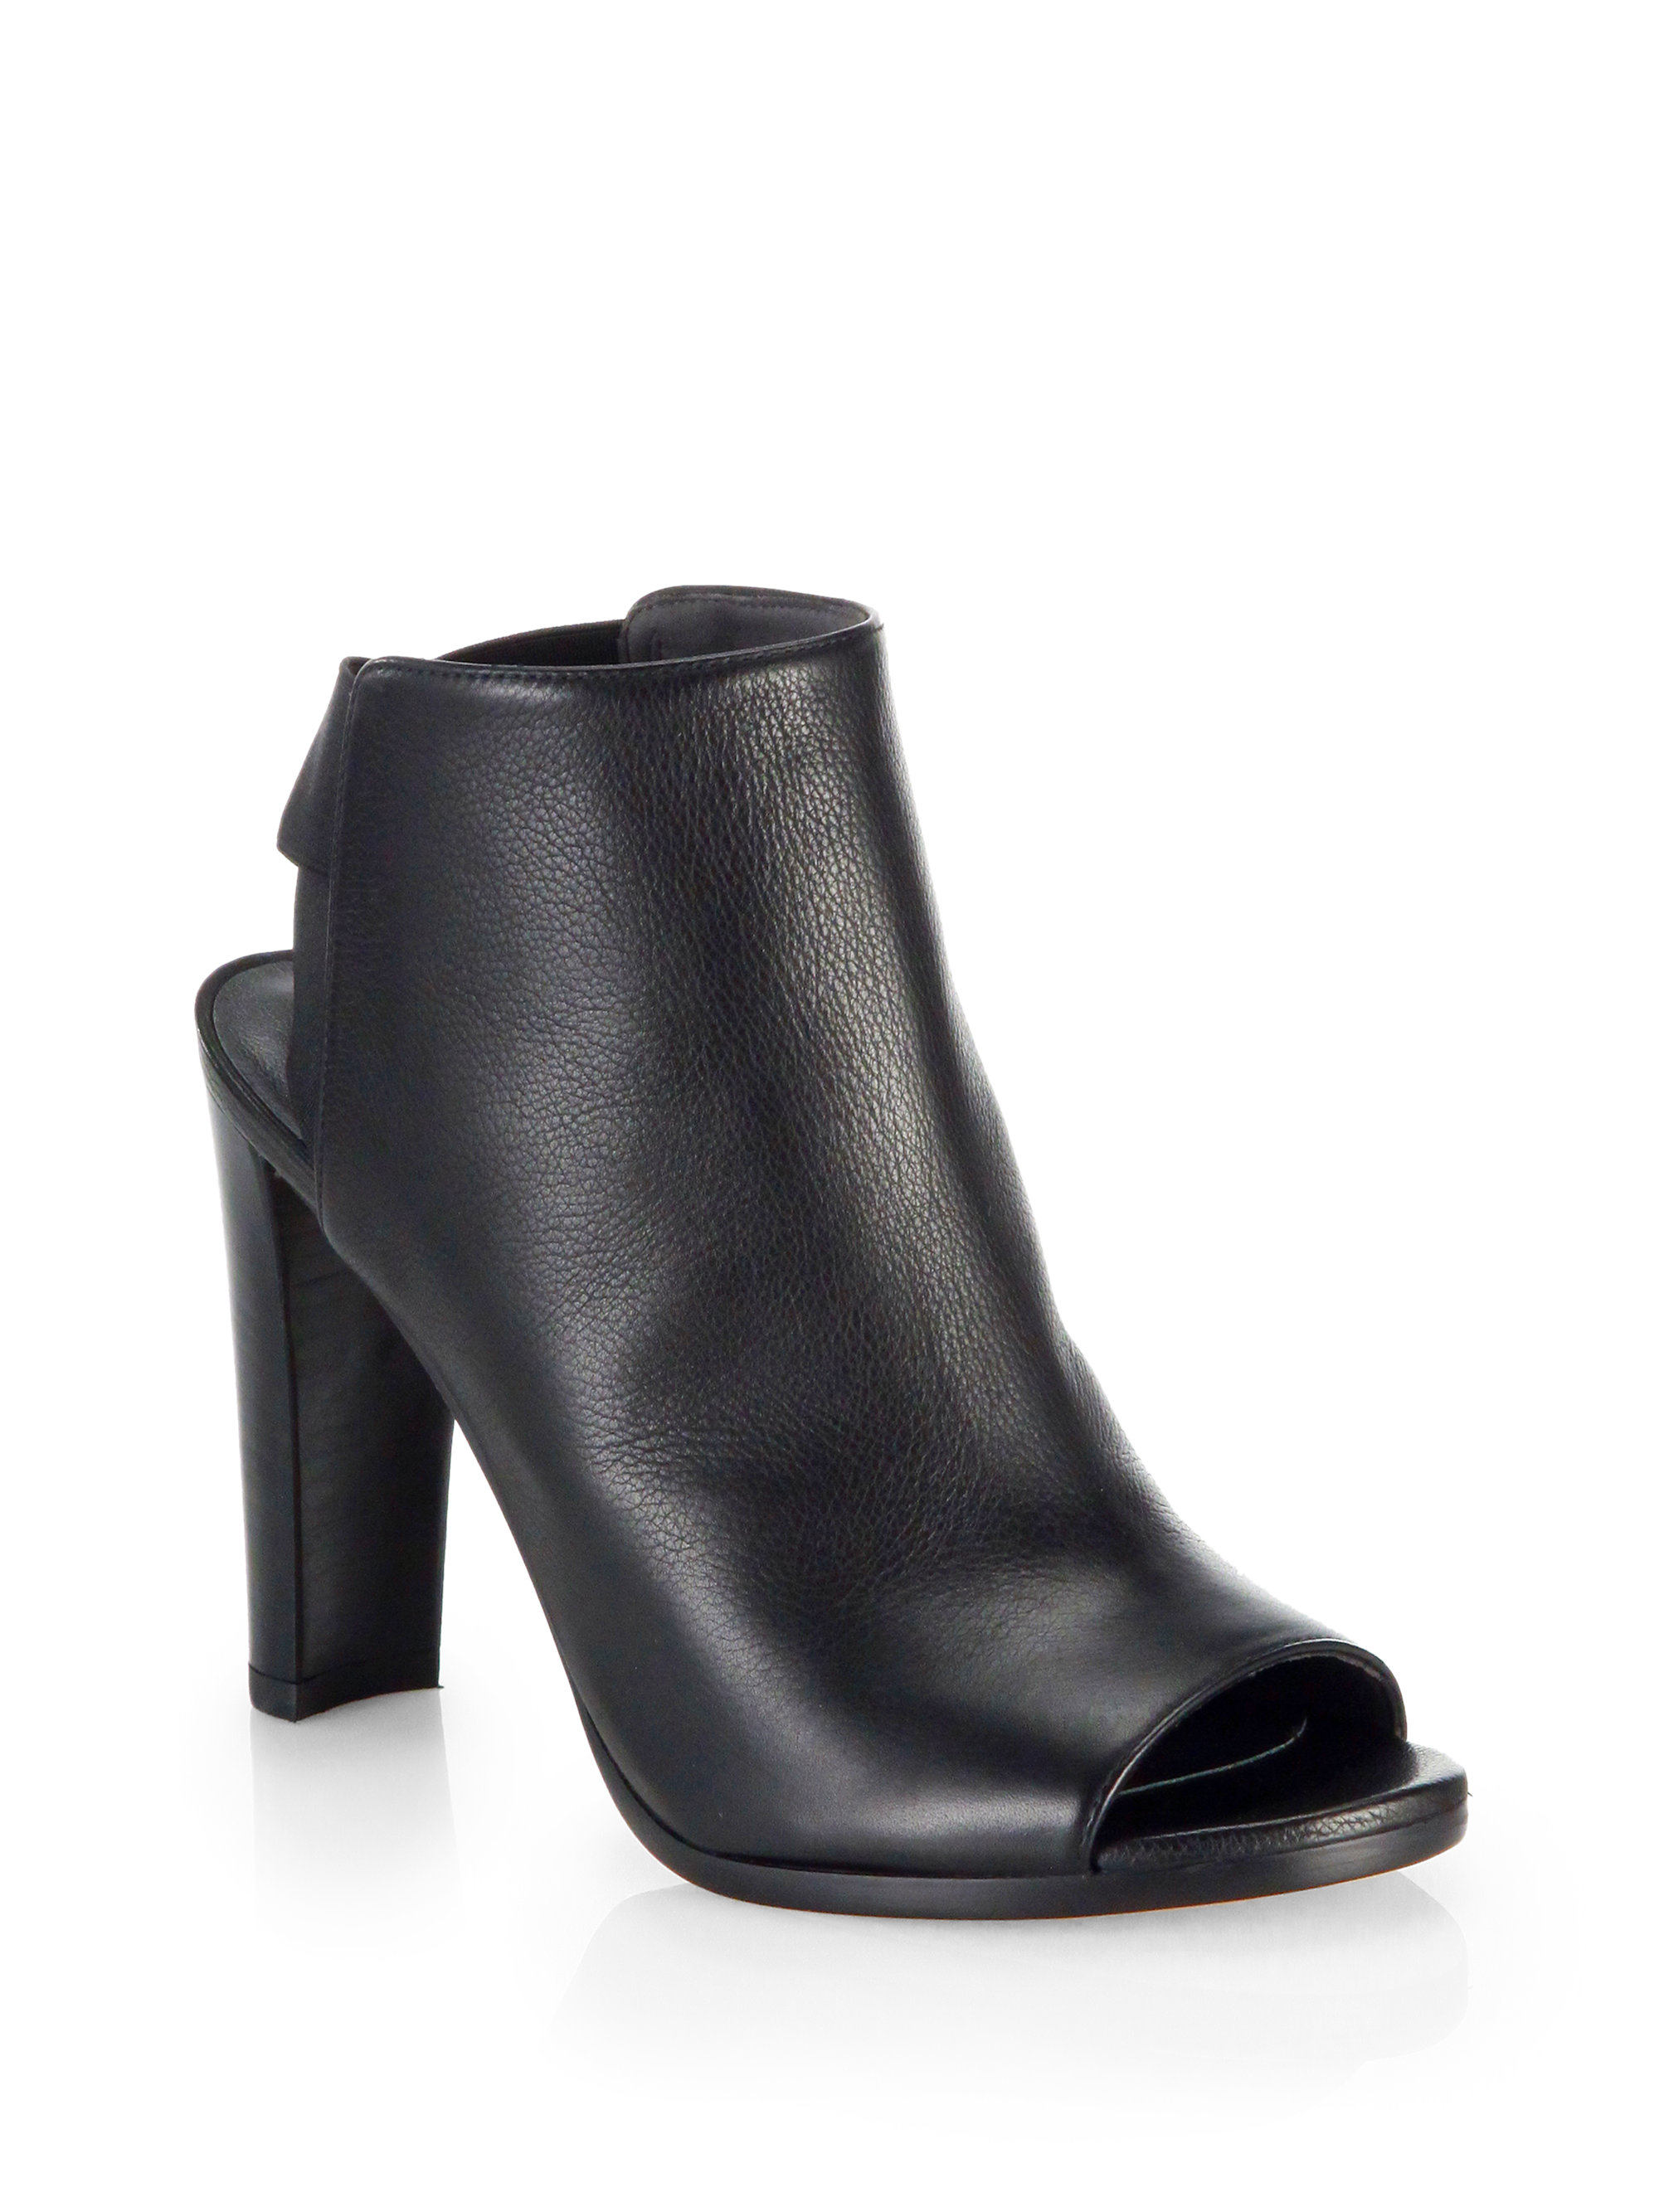 from china cheap price professional online Stuart Weitzman Leather Peep-Toe Ankle Boots sale cheapest price jGkSOS